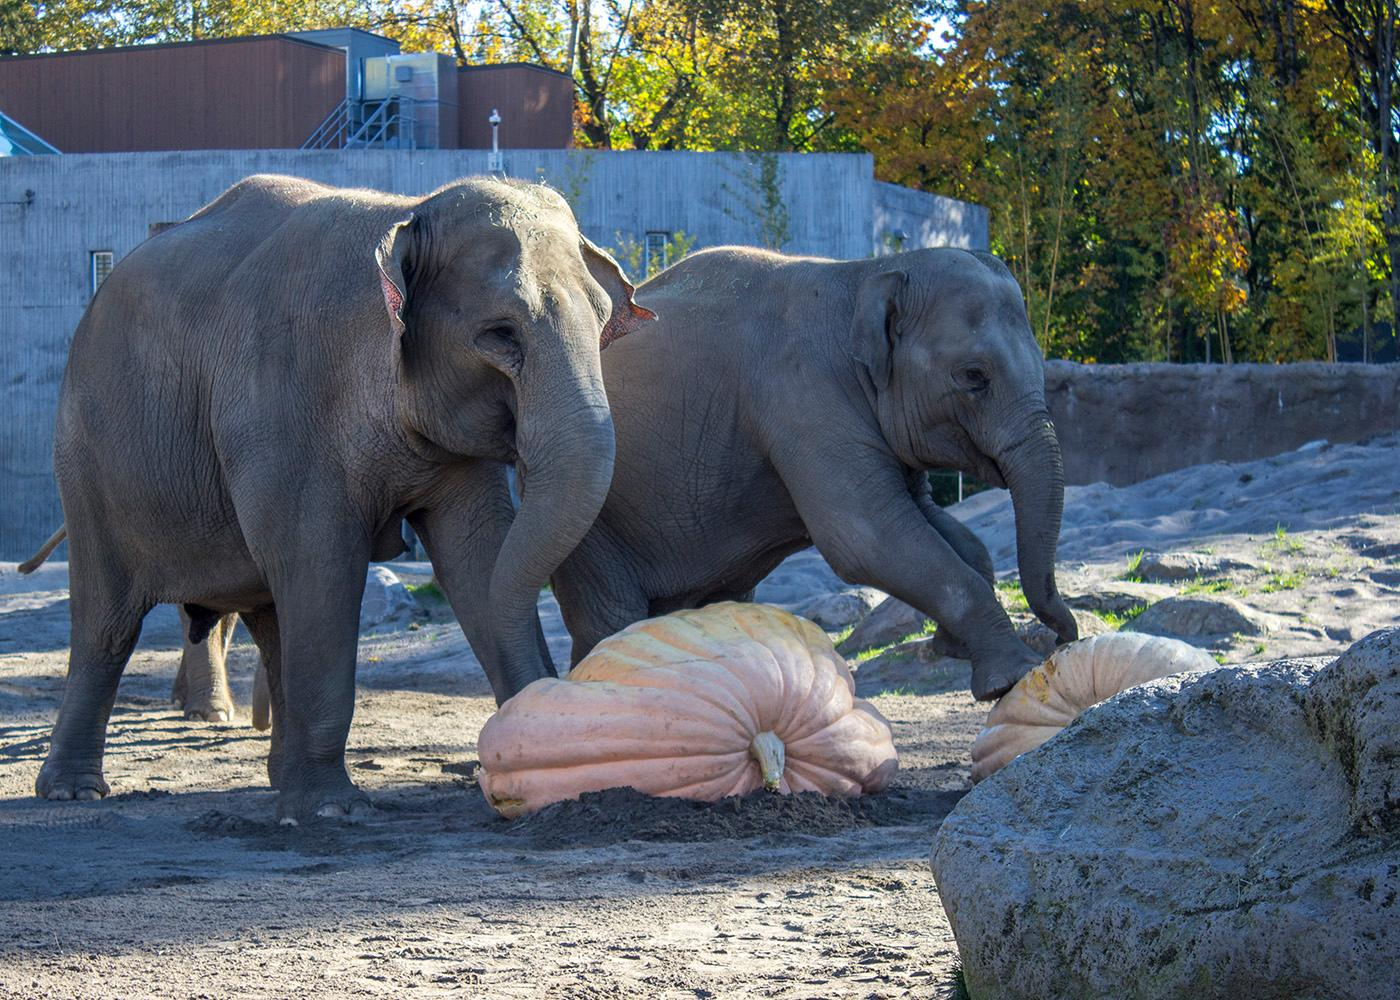 "<p>On Friday and Saturday, Nov. 10-11, veterans, active-duty service members and their families can visit the Oregon Zoo free of charge.</p><p>""We're grateful to everyone who has served our country and the families who support them,"" said Dr. Don Moore, zoo director. ""We're also grateful for Walmart's continued support, which ensures that more of our community can visit the zoo and be inspired to take action for wildlife.""</p><p>To receive free admission Friday, Nov. 10, and Saturday, Nov. 11, visitors must show a military or veteran organization ID, discharge papers or other official military identification; families of deployed military personnel must show an active duty ID.</p>In addition, the zoo store is offering a 10 percent discount and all zoo food outlets are offering a 25 percent discount for veterans, active military personnel and their families, with proper identification. Photo by Amanda Butt"